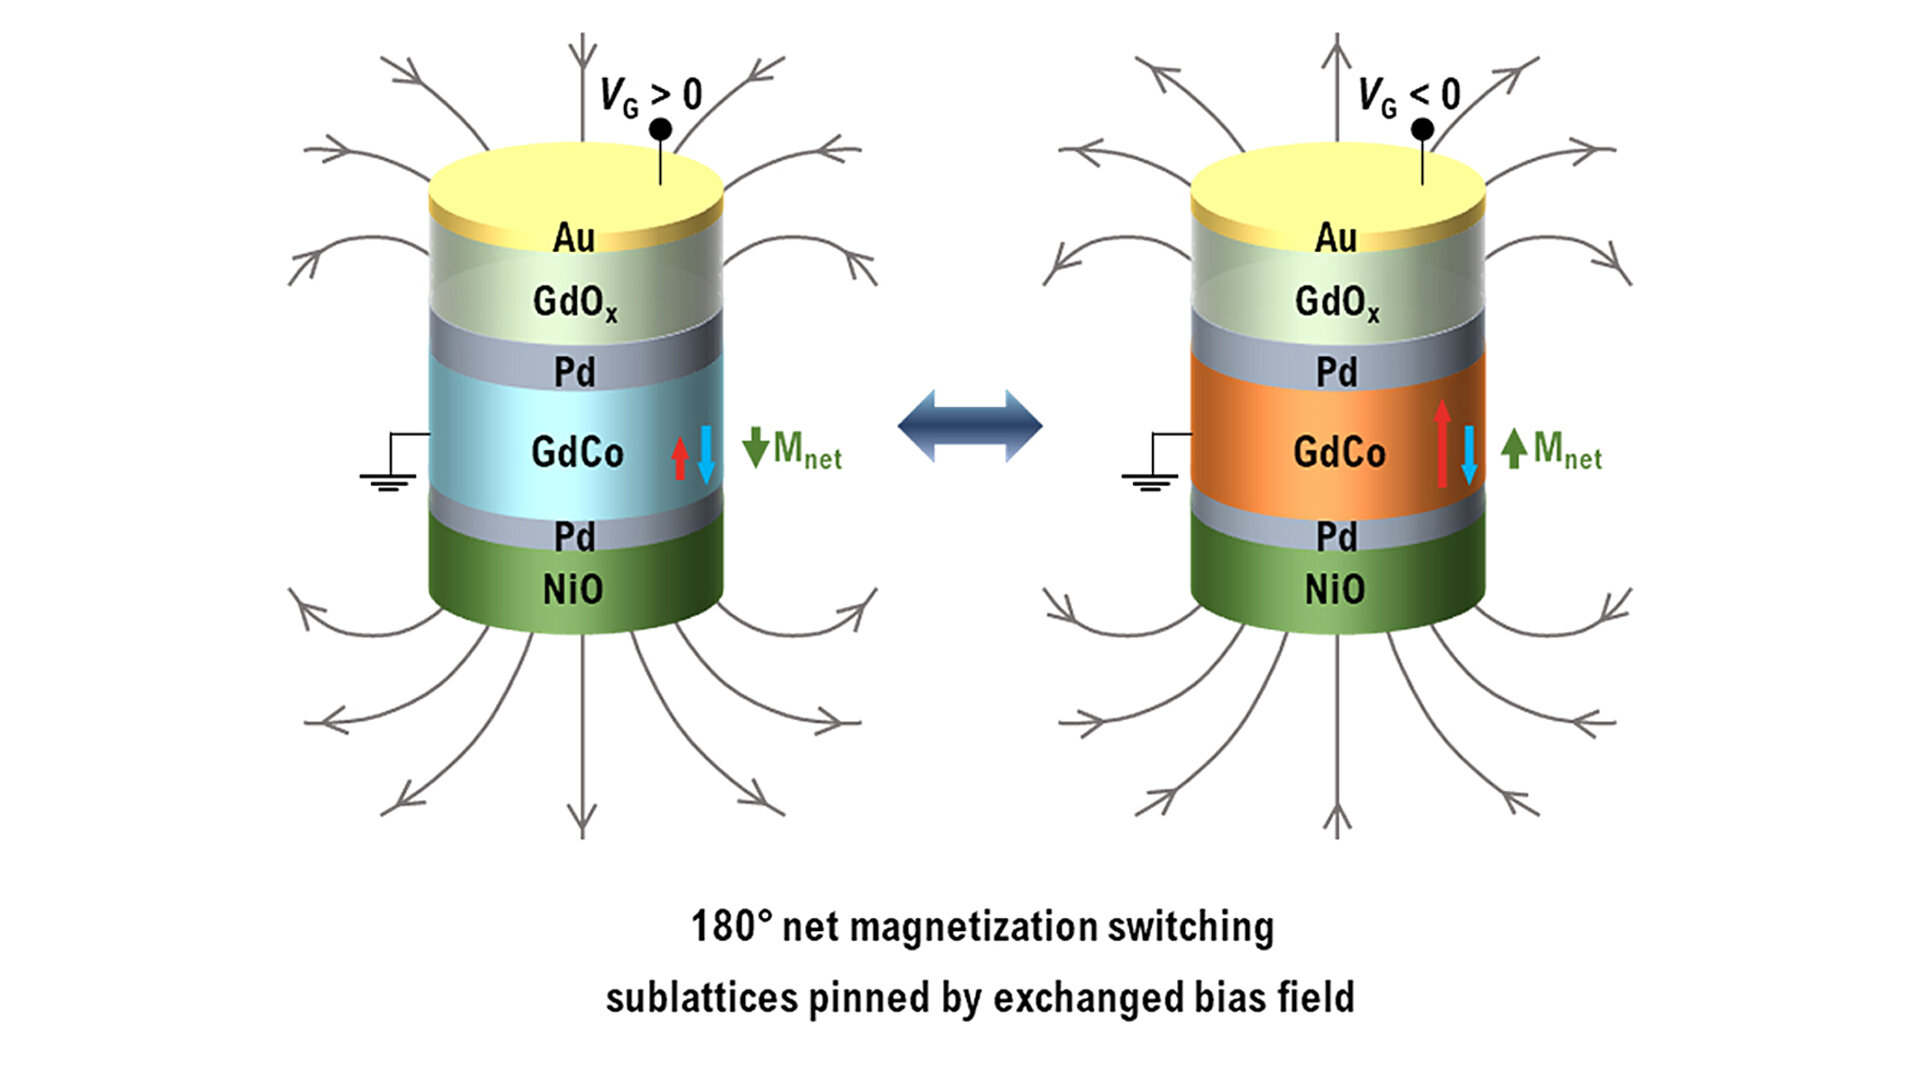 Discovering energy saving technologies in the IT sector: Controlling ferrimagnets by voltage